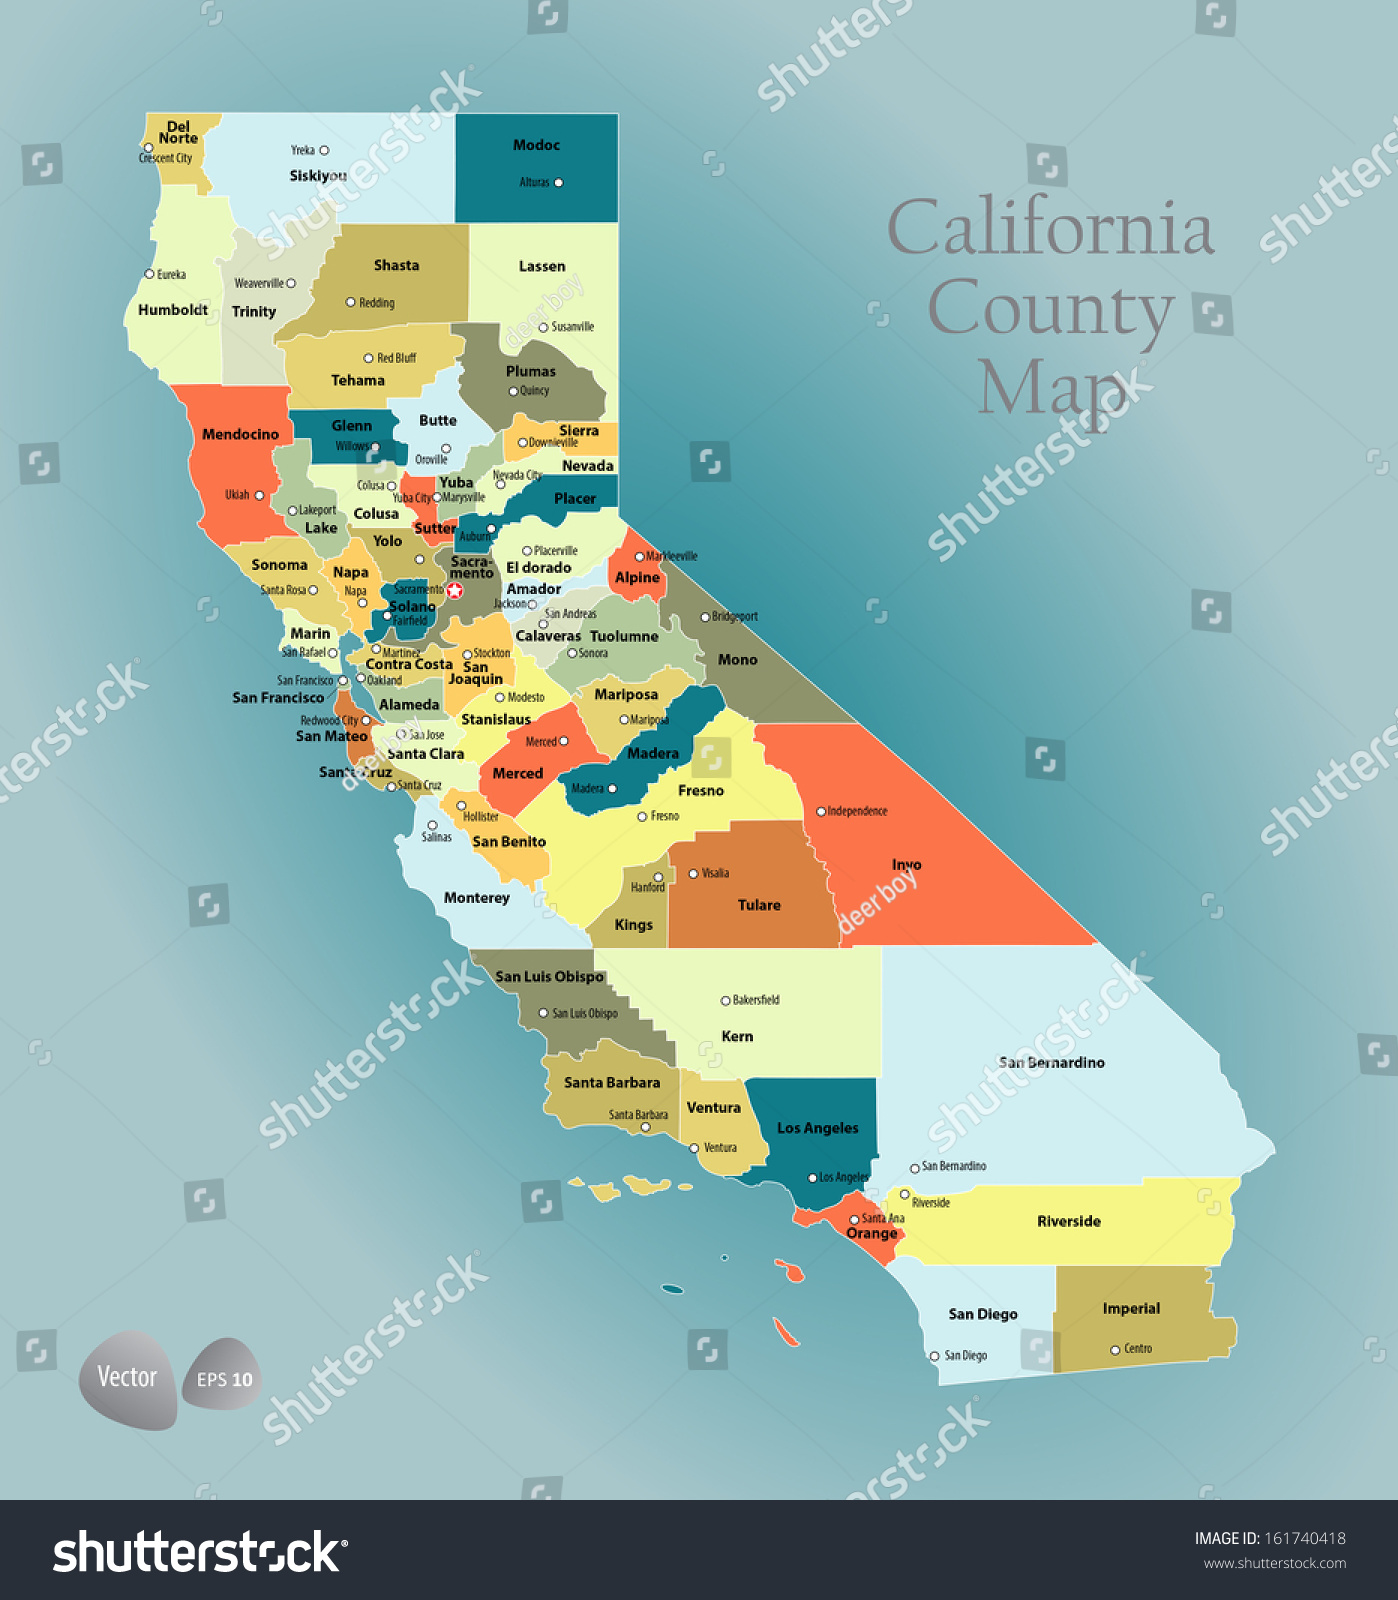 stock-vector-california-county-map-vector-illustration-161740418 United States America Map Capitals on united states map wall decal, united states and capitals map, united states classroom map, united states heart shape, united states map color, united states poster, united states history presidents, united states and their capitals, united states and its capitals, united states map 1871, map of america states and capitals, map of the united states capitals, united states growth map, united states map with capitals, united states 1791 map, united states city map usa, united states 50 states map with names, united states and caribbean map,